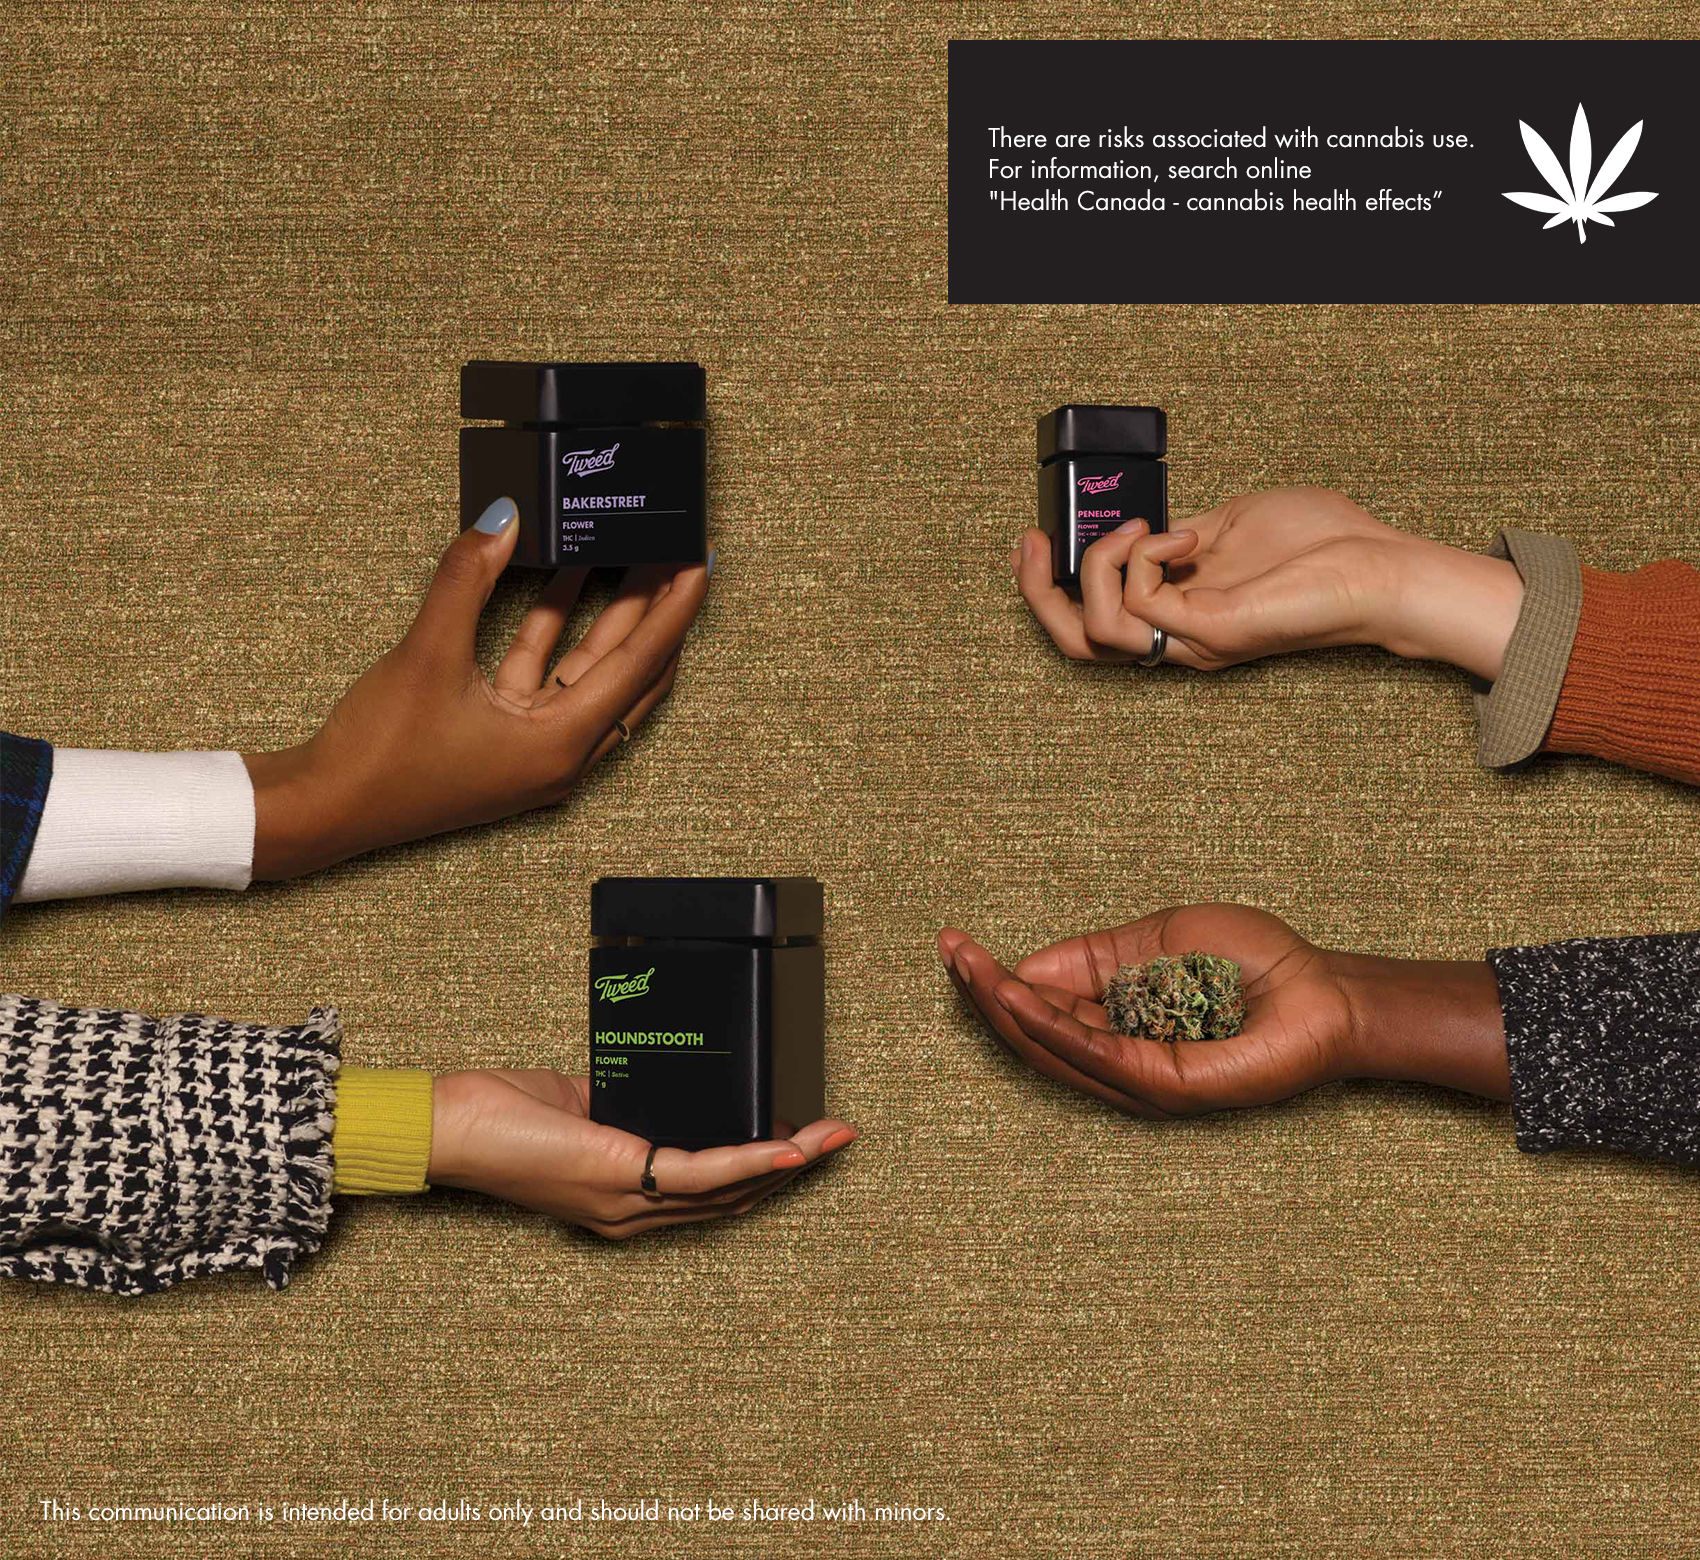 Four hands holding Tweed cannabis flower containers and bud